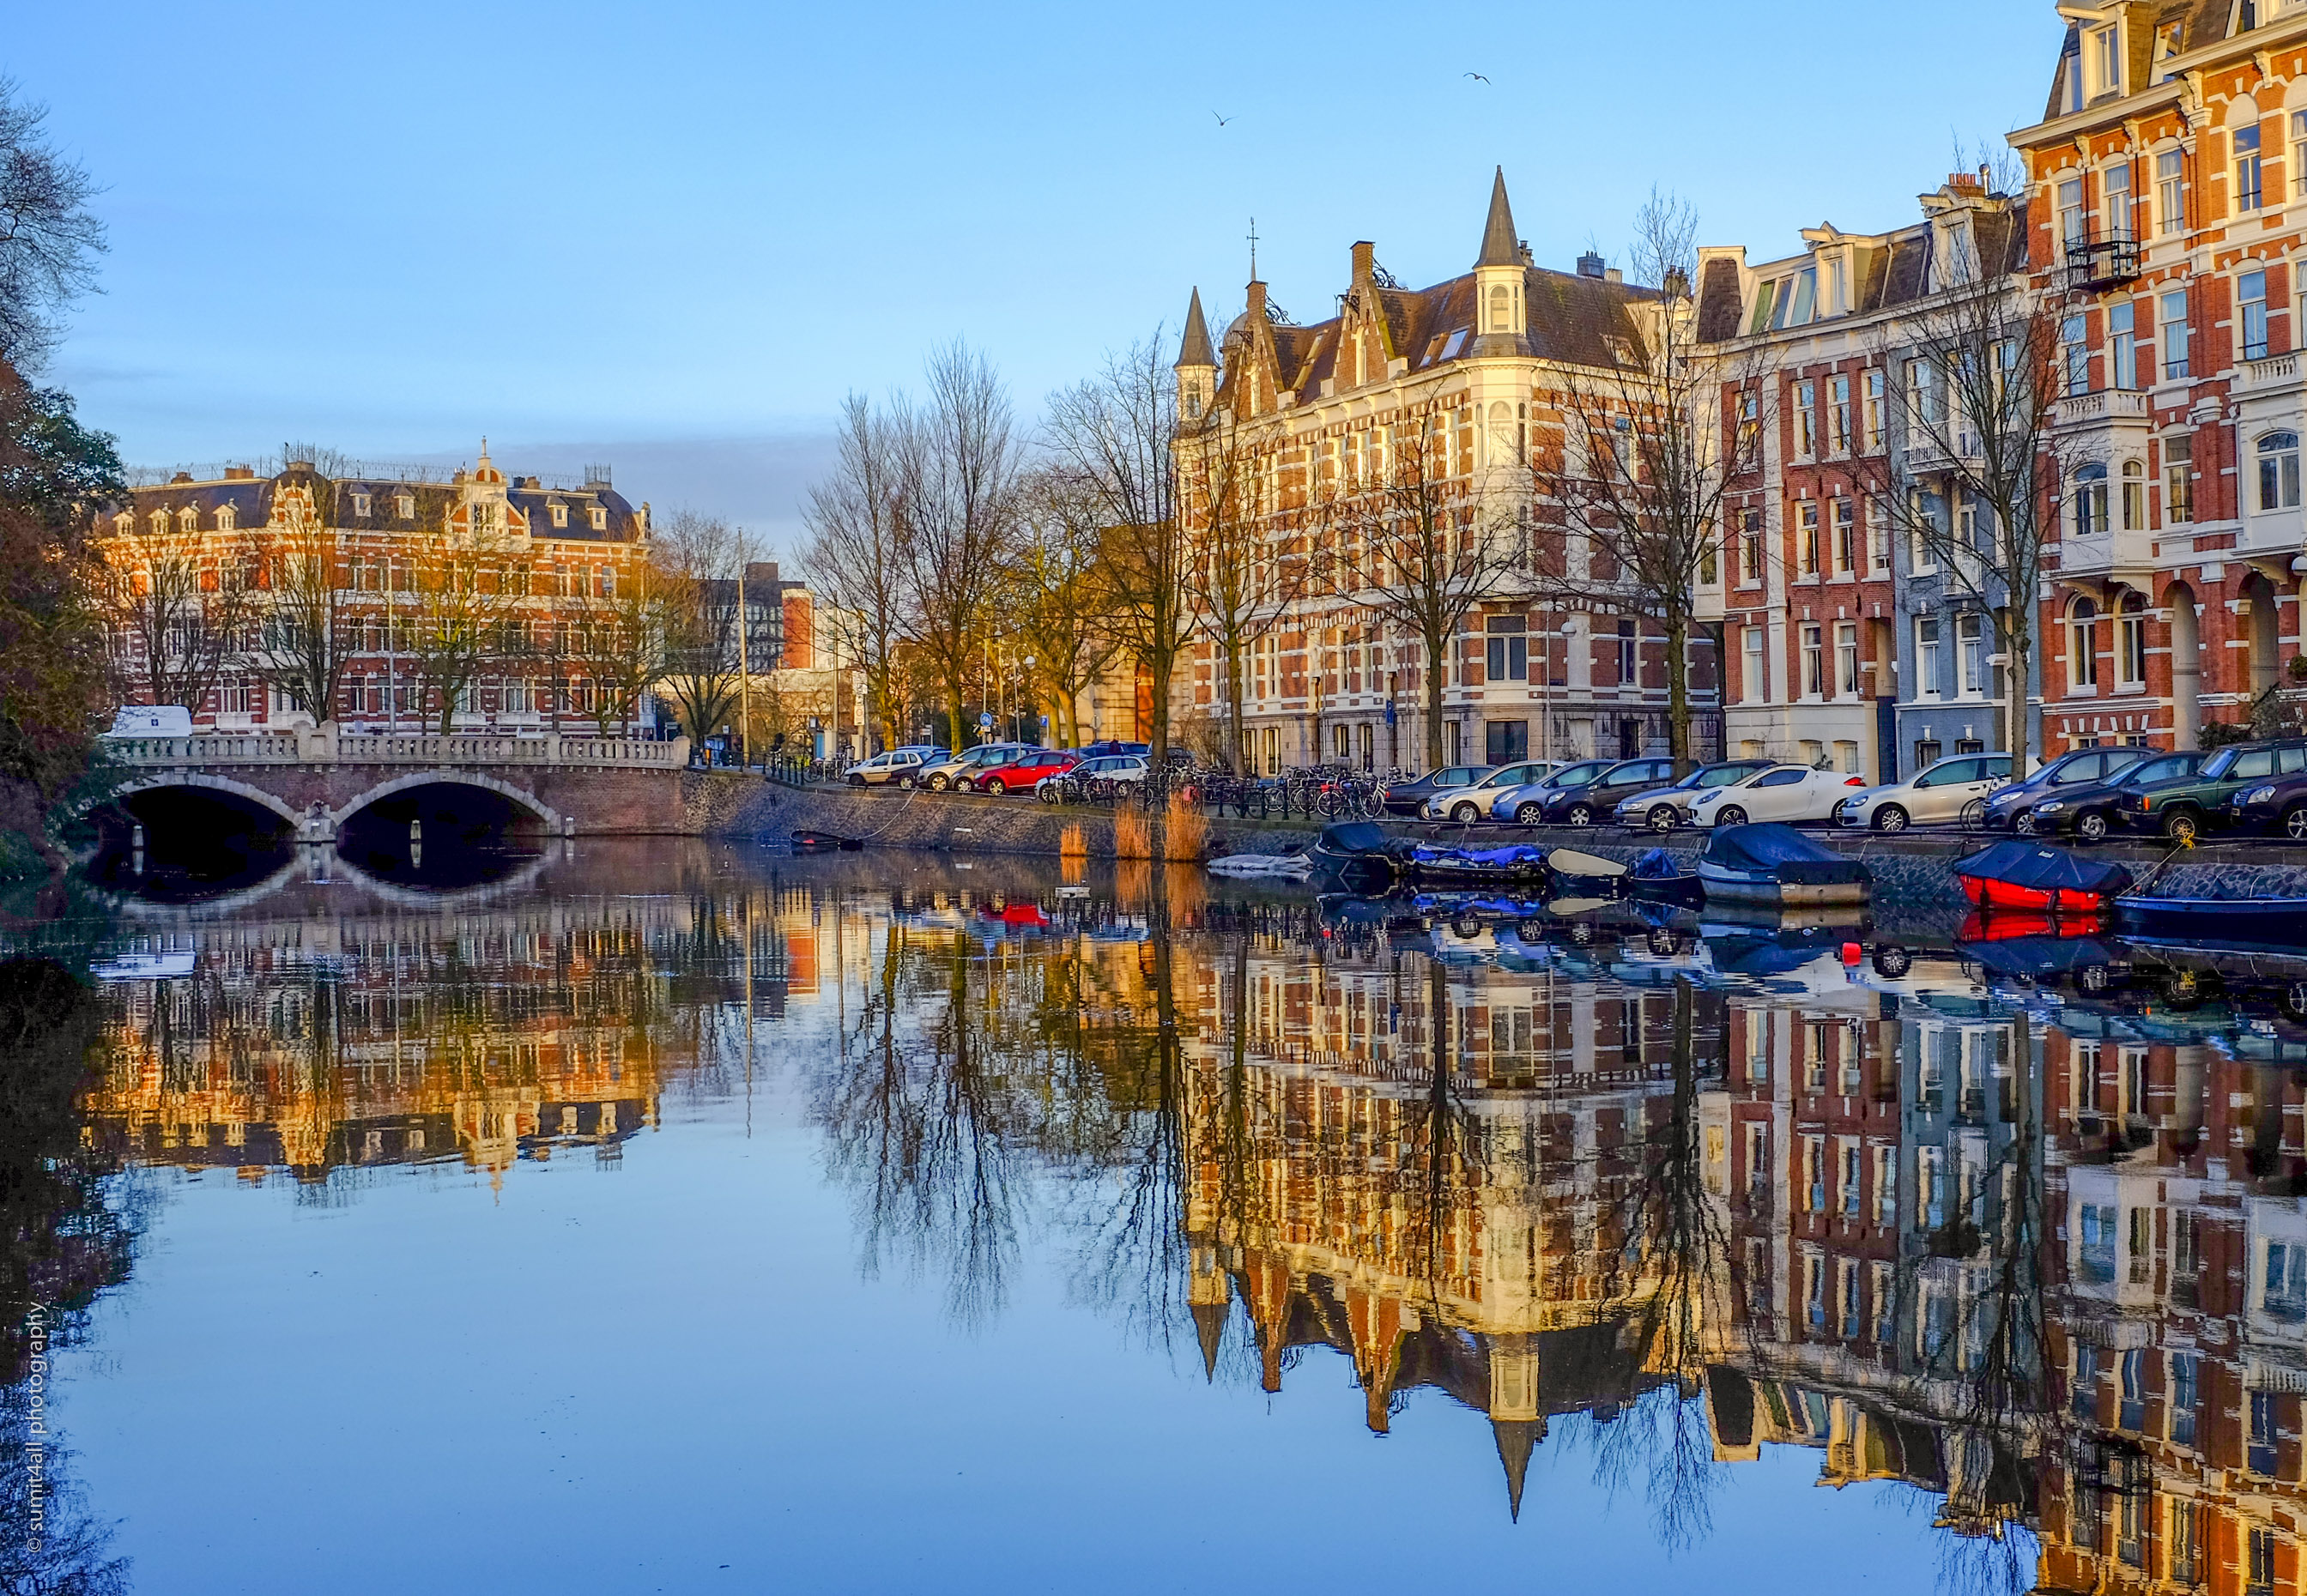 A Summer Afternoon in Amsterdam